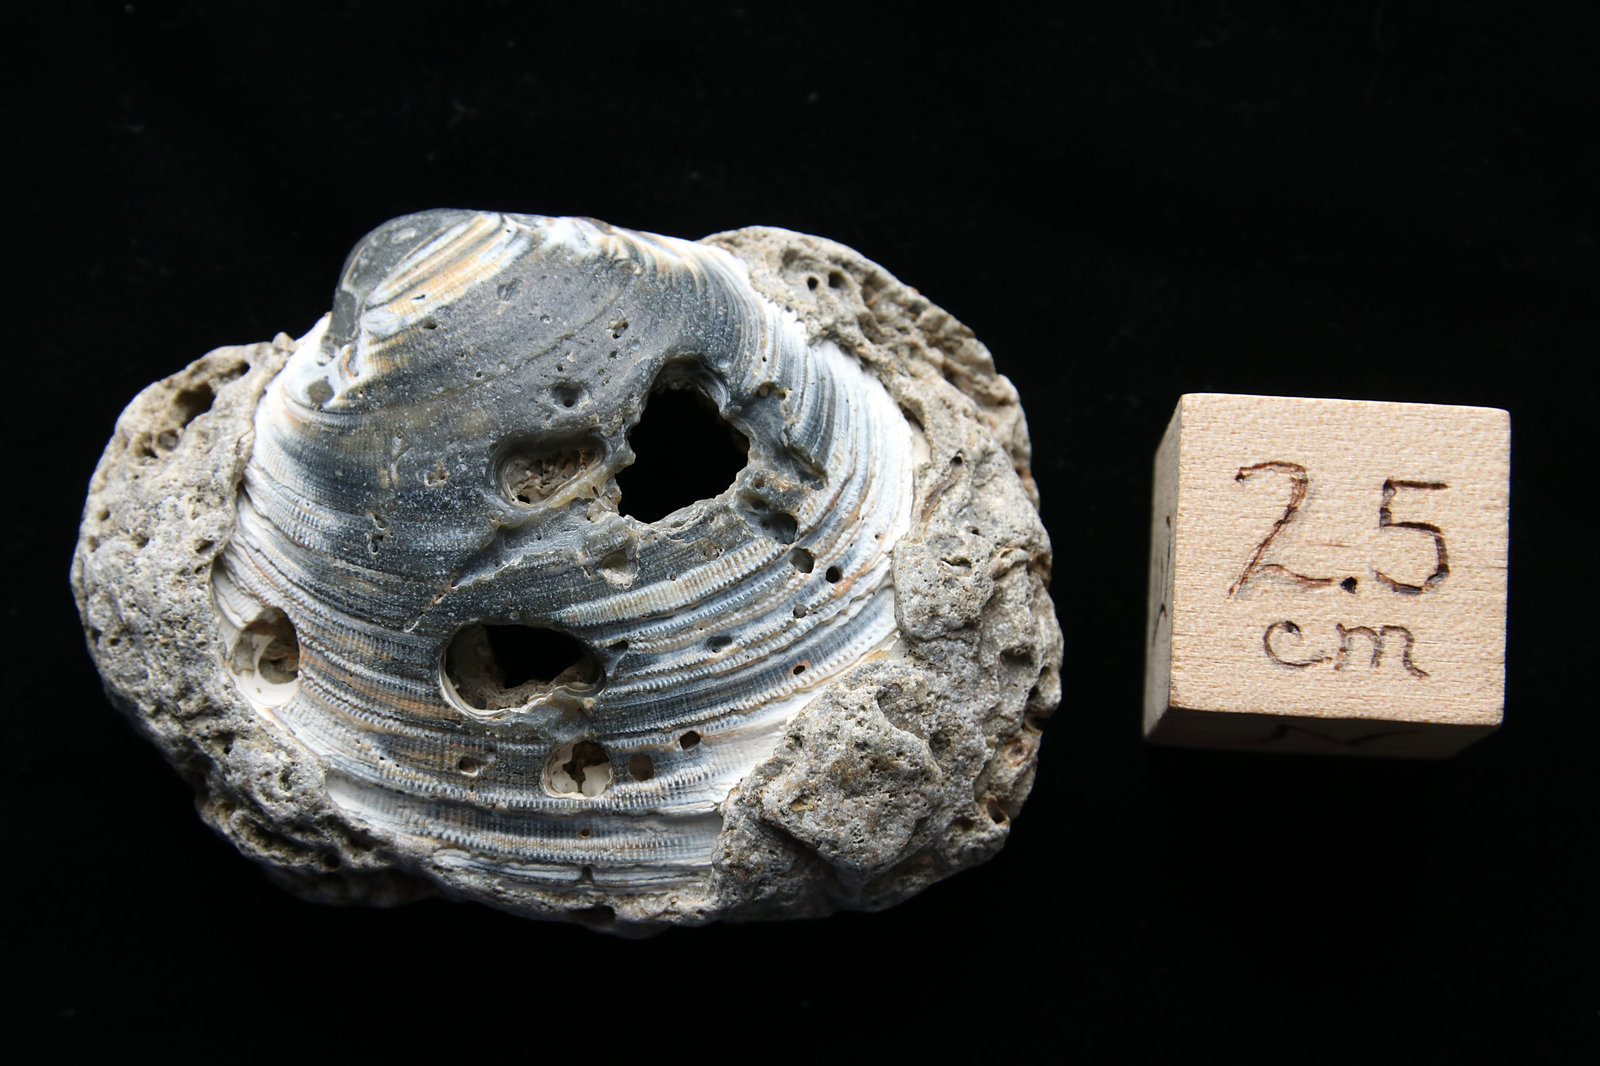 Fossil Clam Shell, Cape Hatteras